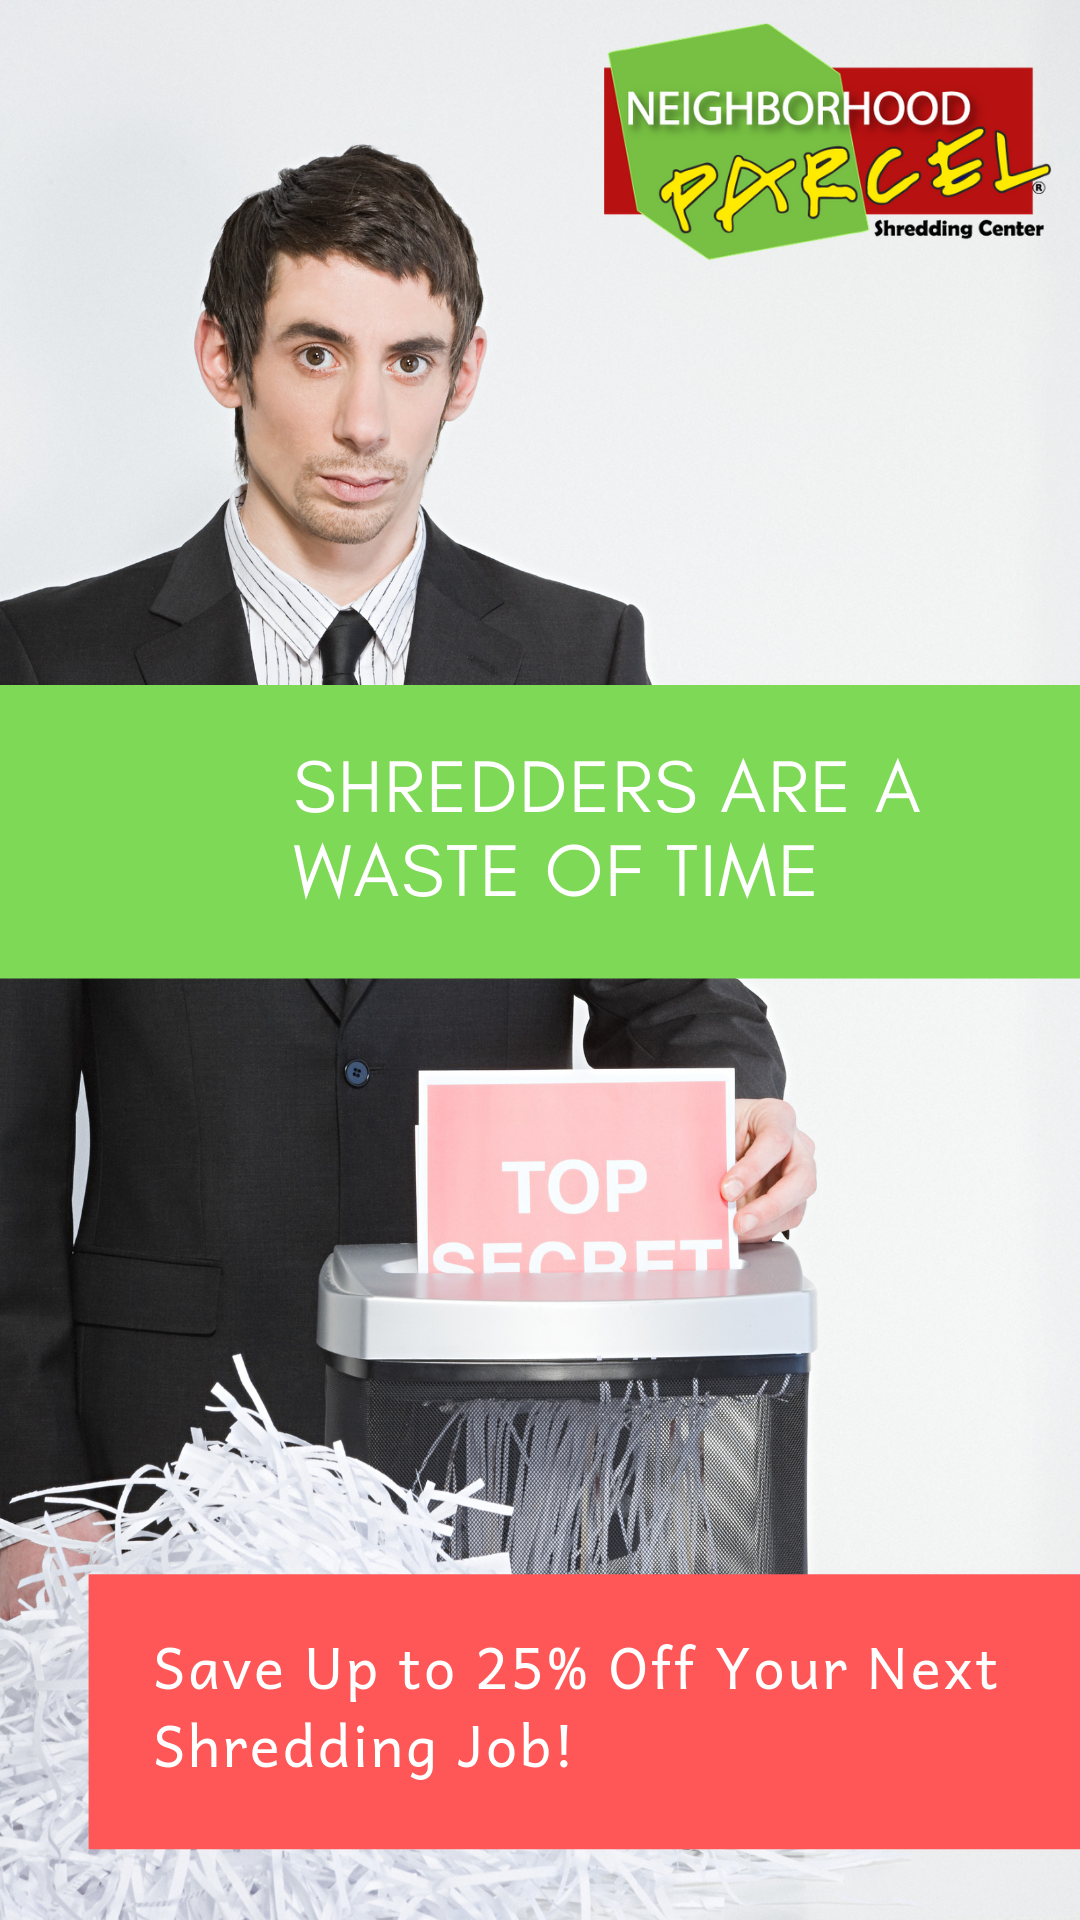 shredders are a Waste of time